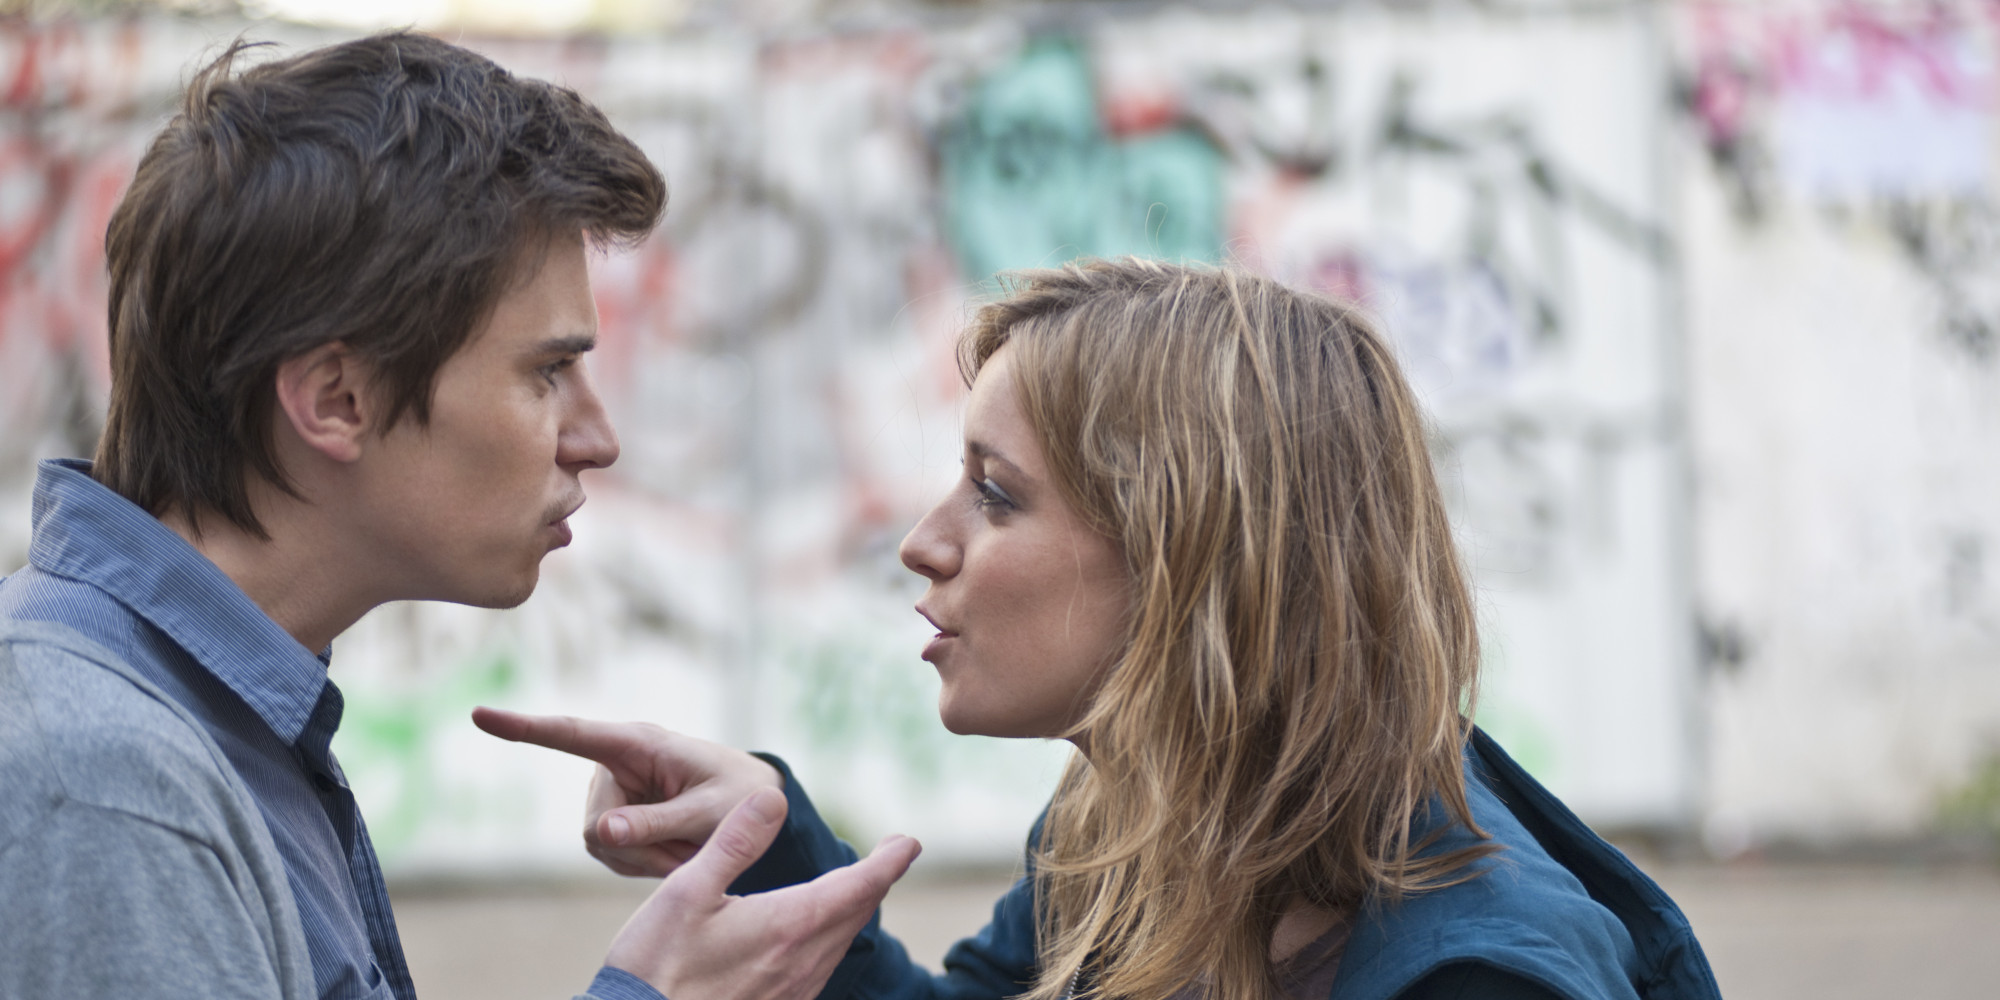 16 Signs You're NOT Ready for a Relationship